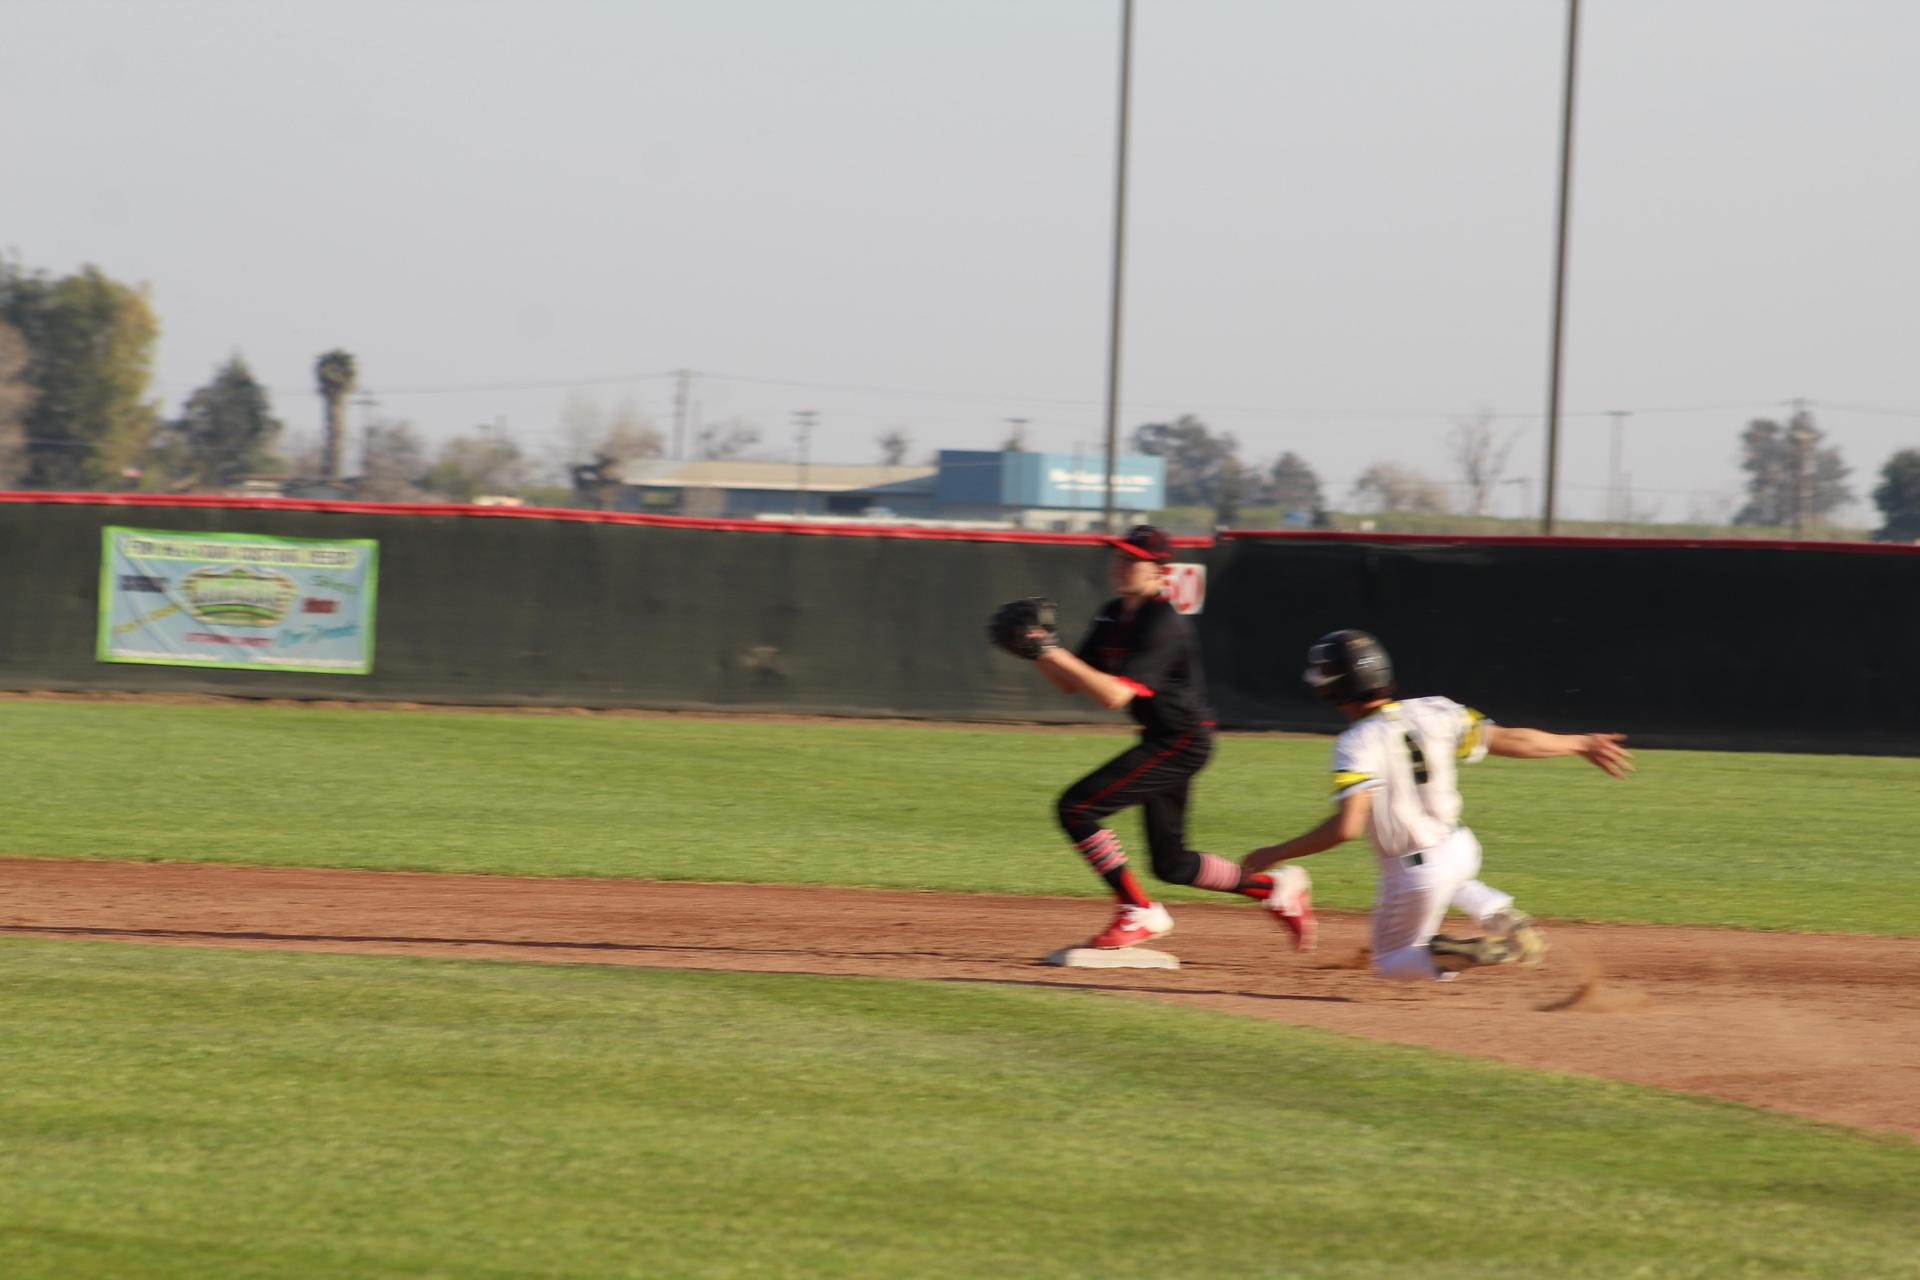 varsity baseball players in action against Sierra Pacificvarsity baseball players in action against Sierra Pacific